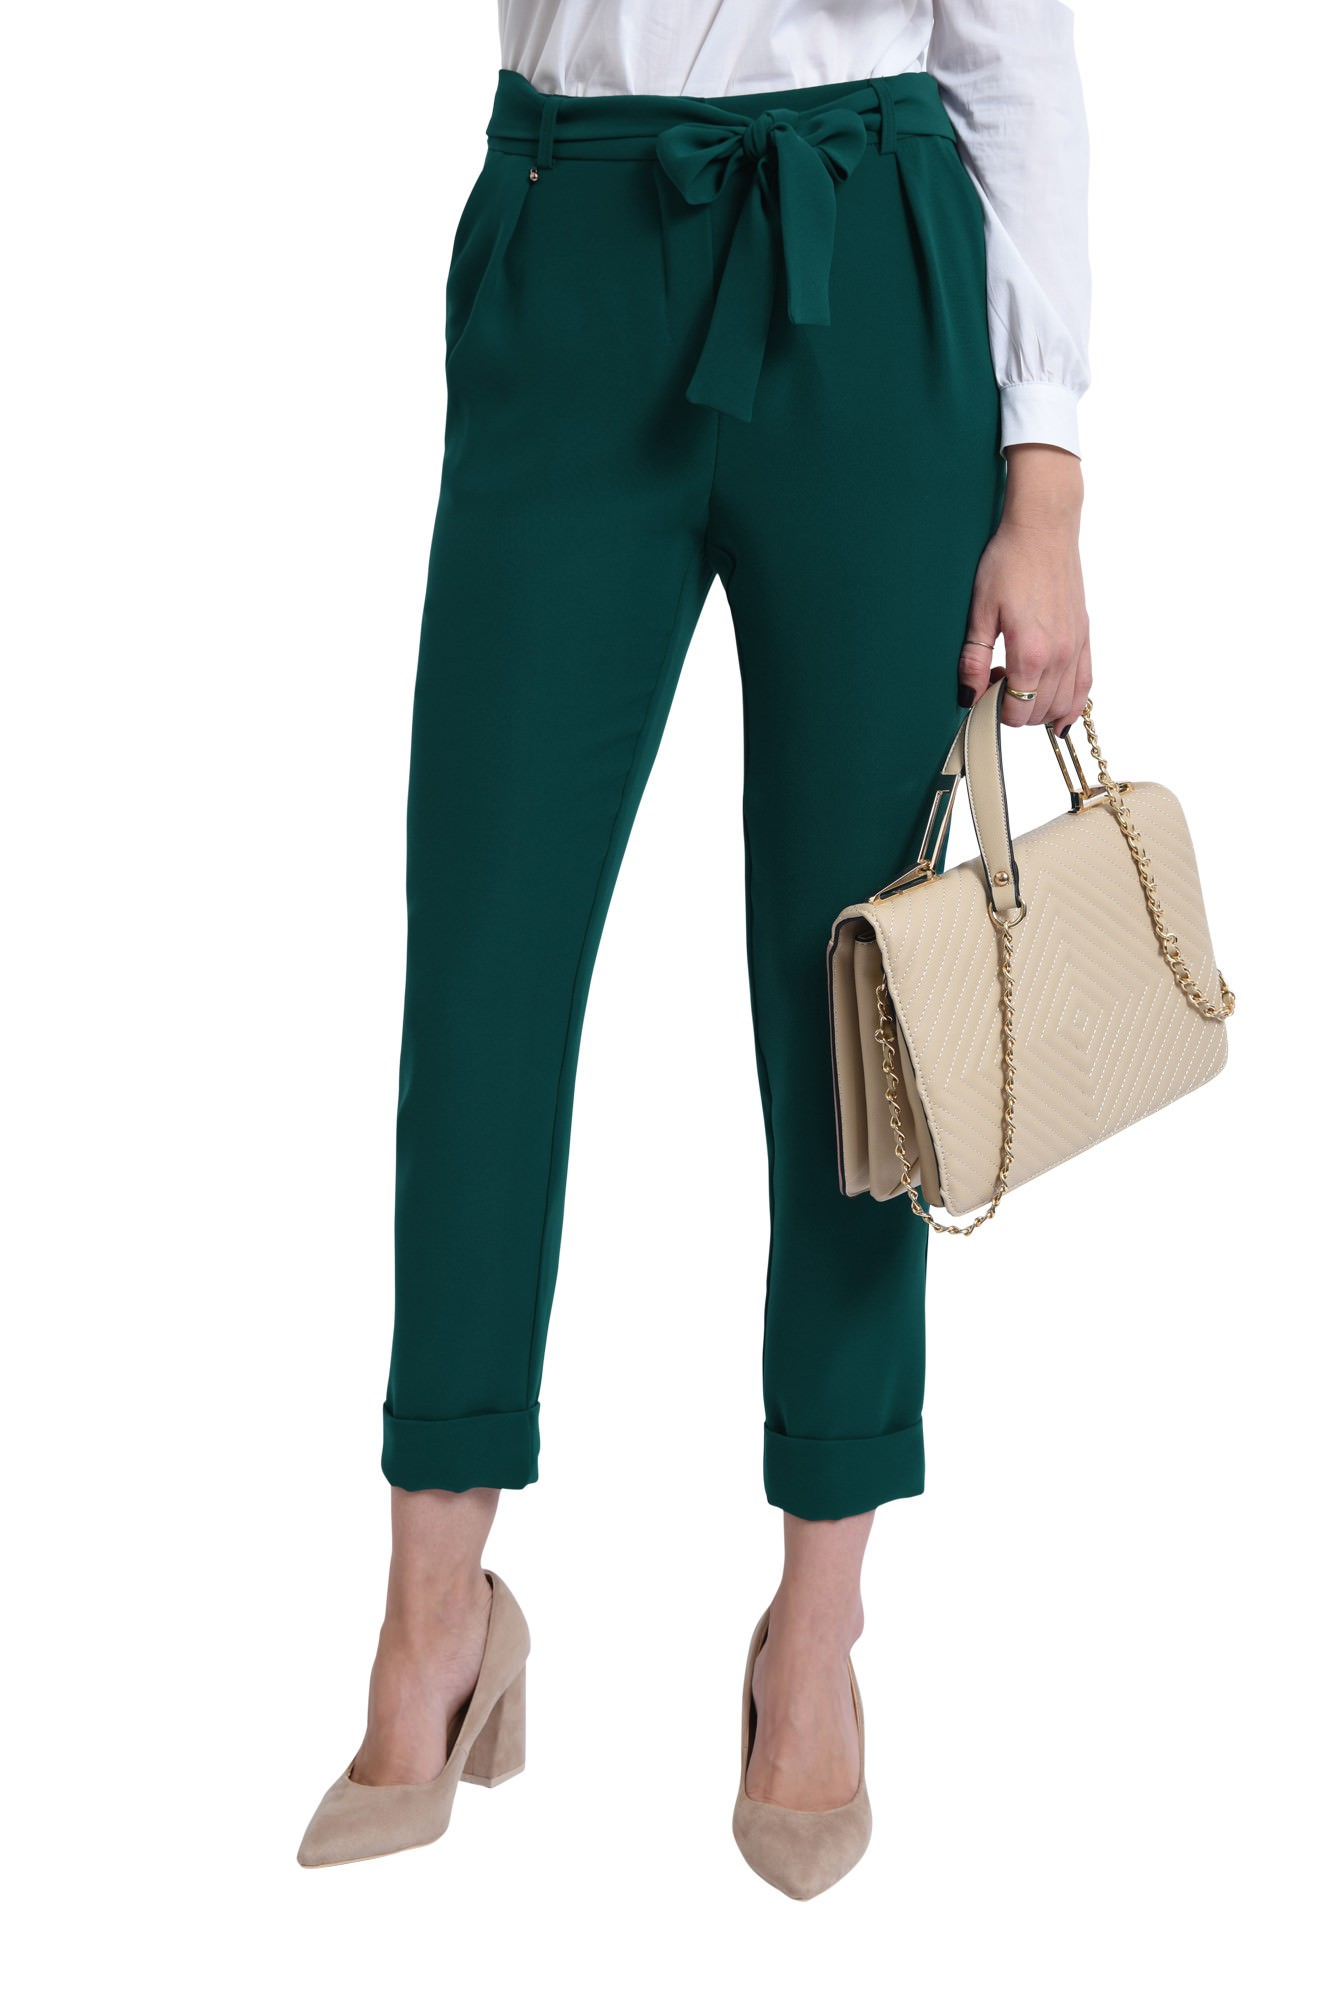 2 - PANTALON OFFICE PT 172-VERDE